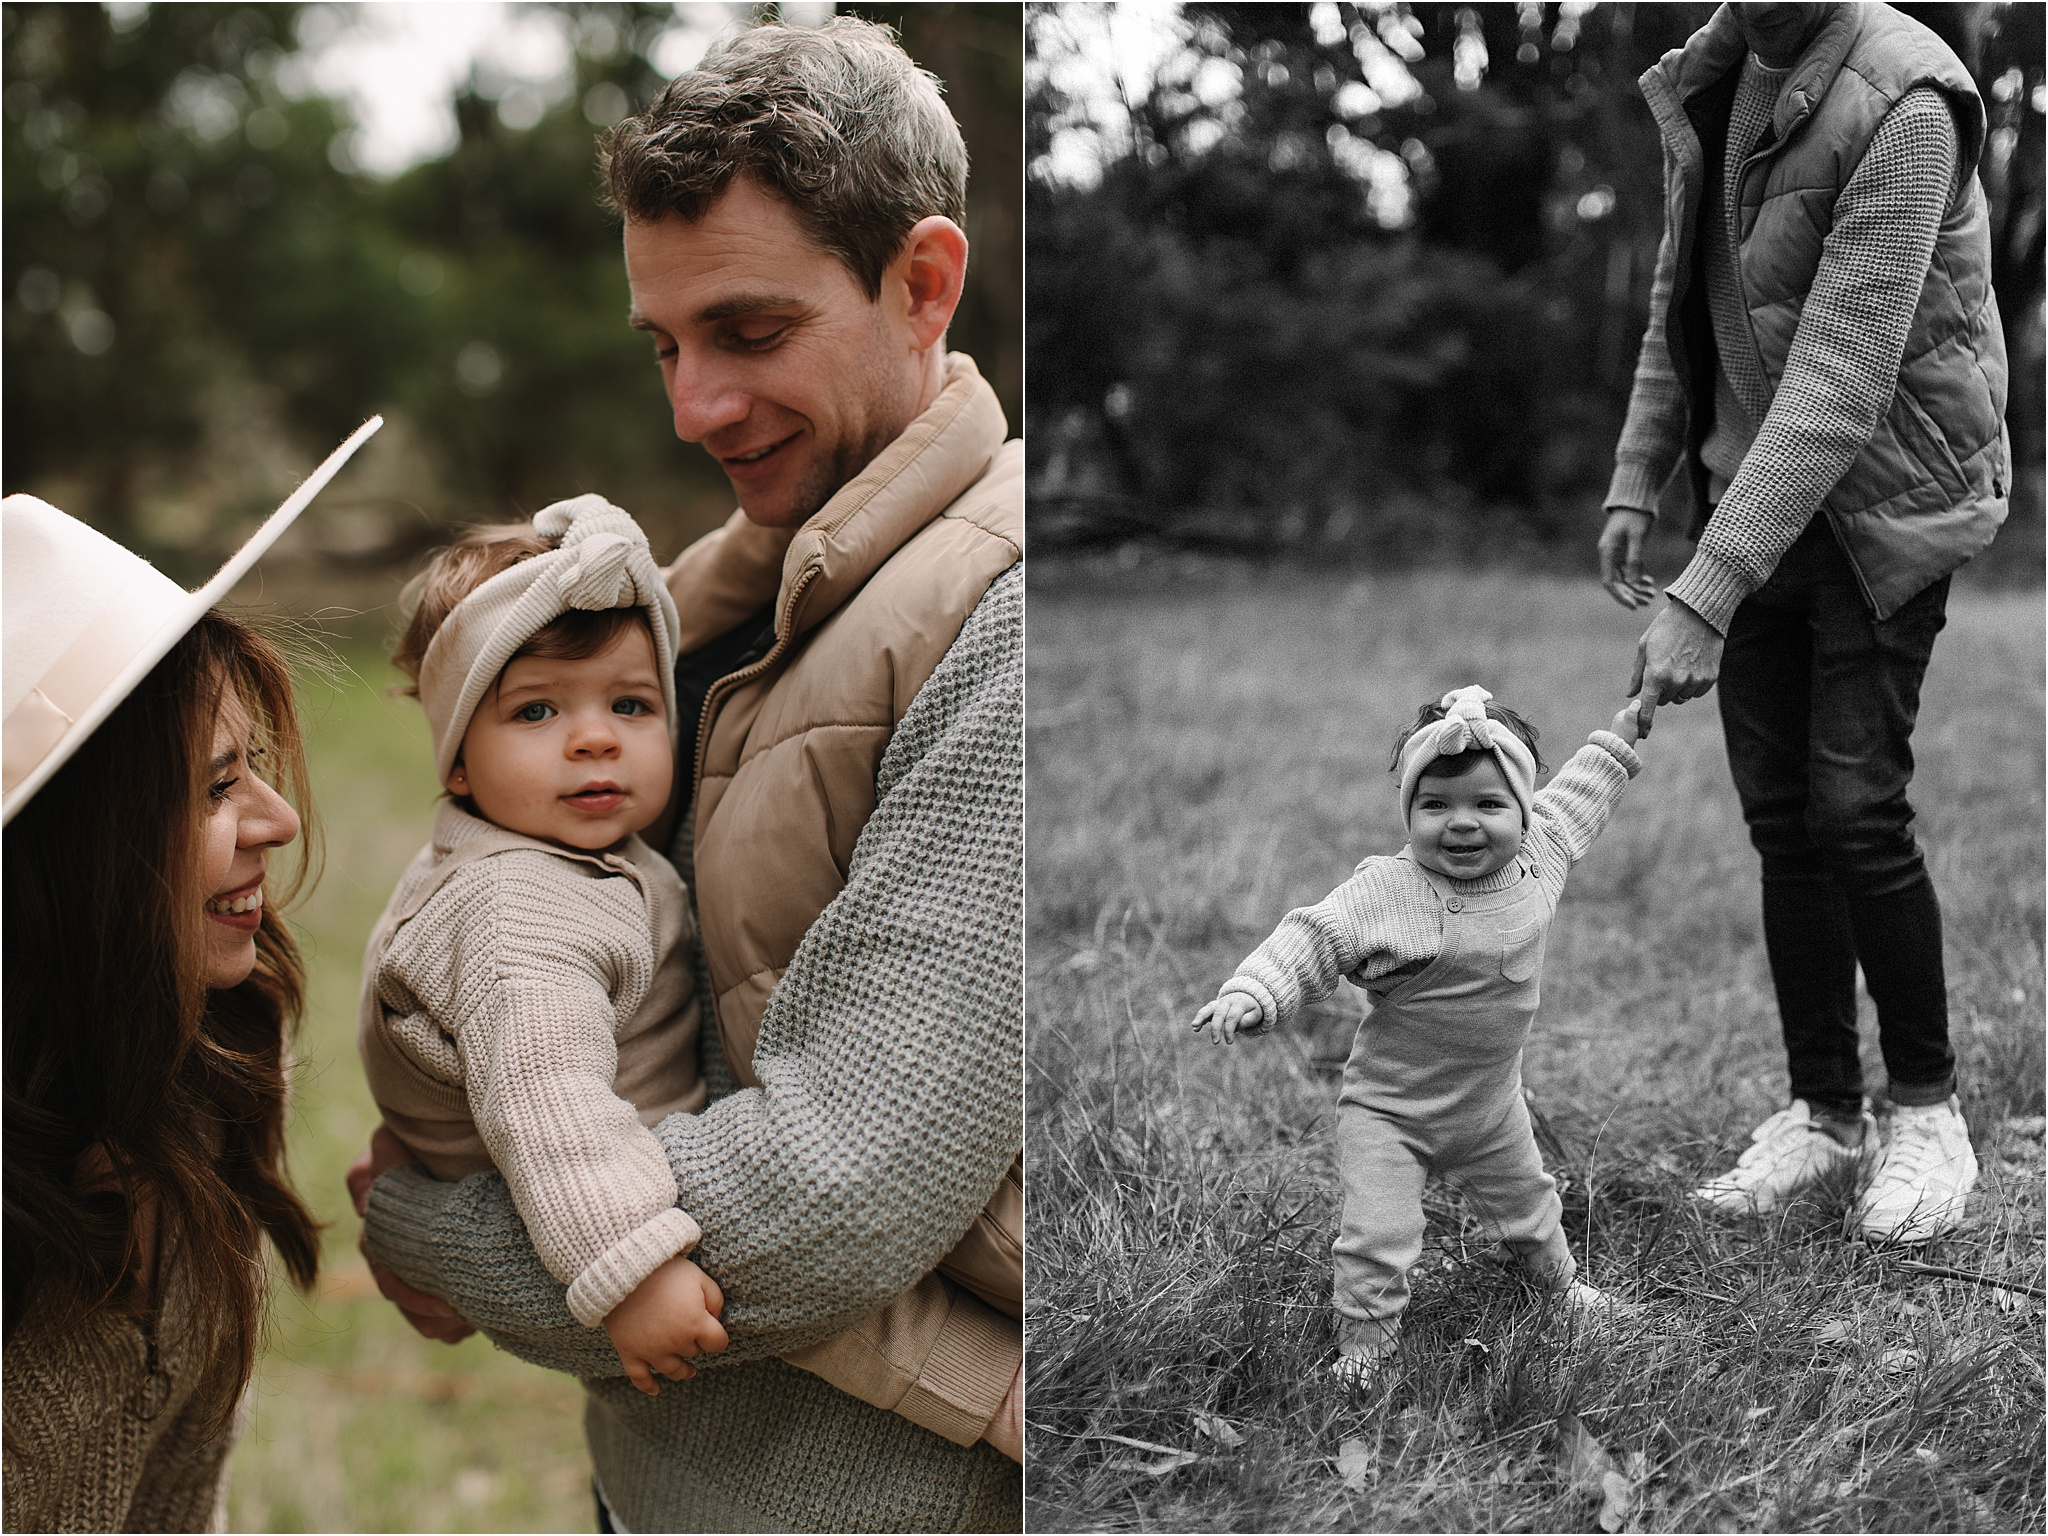 A cute toddler in Dads arms